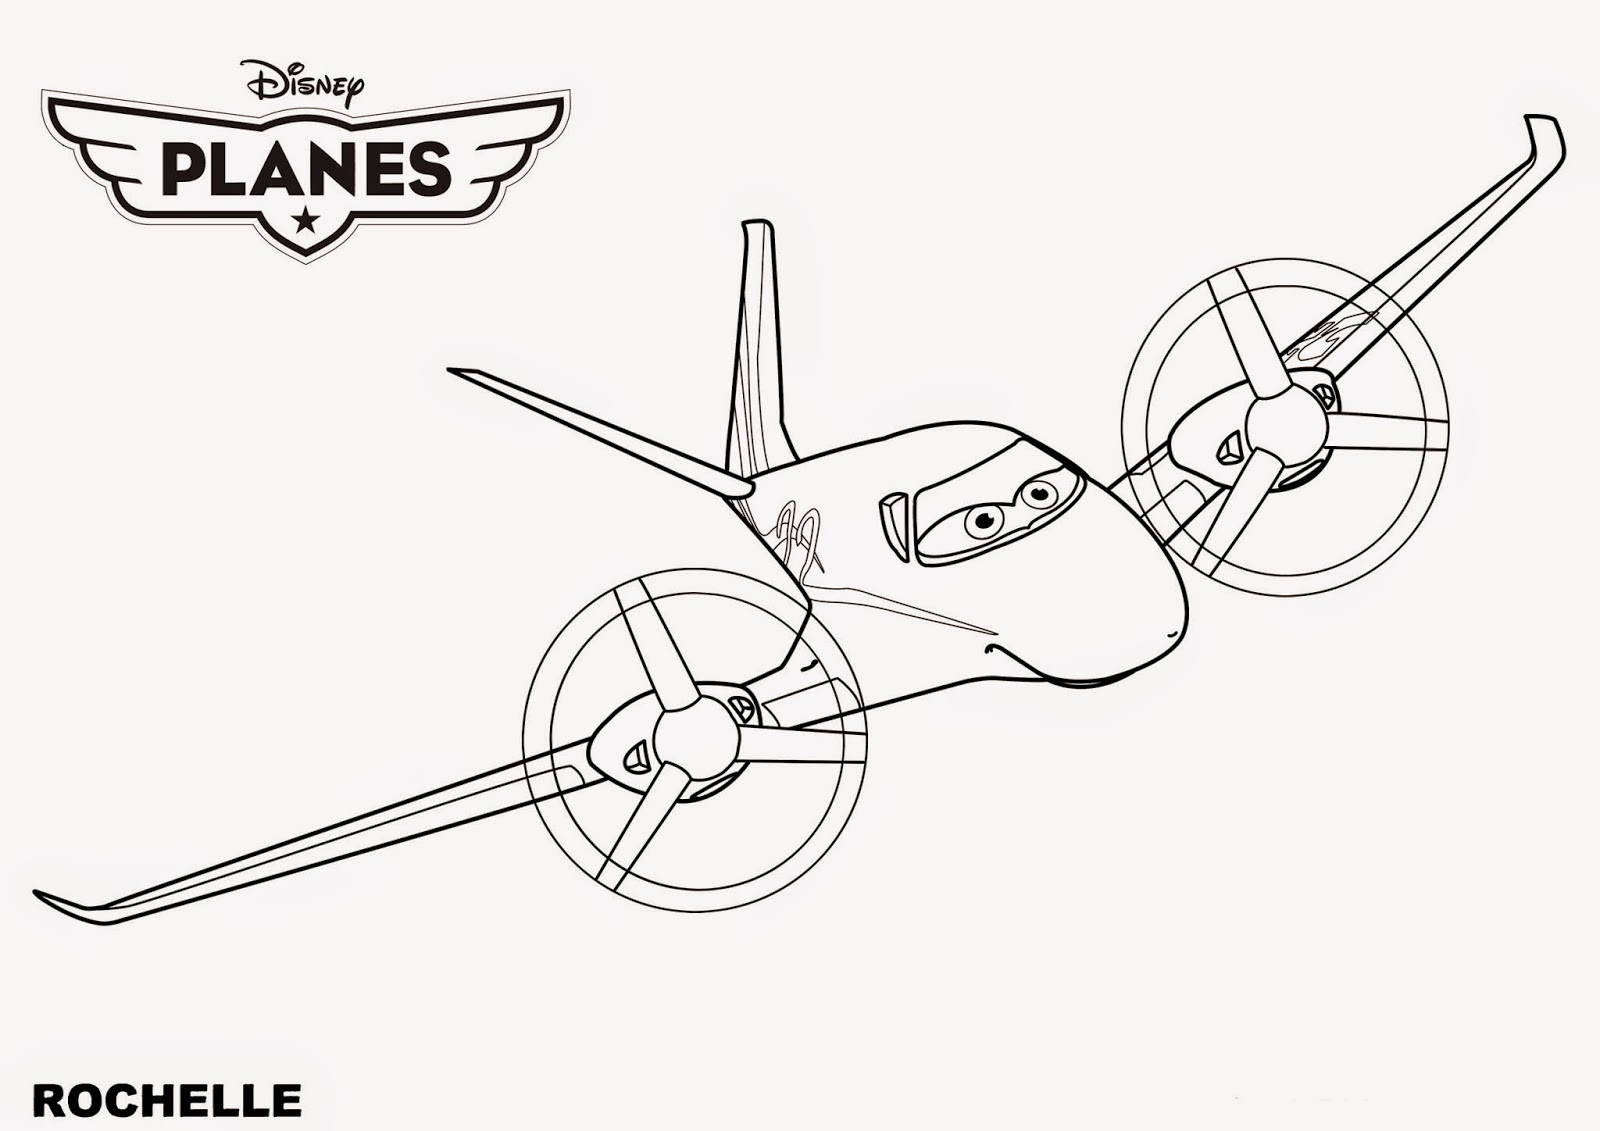 Best ideas about Disney Planes Coloring Pages For Kids . Save or Pin Coloring Pages Disney Planes Coloring Pages Free and Now.